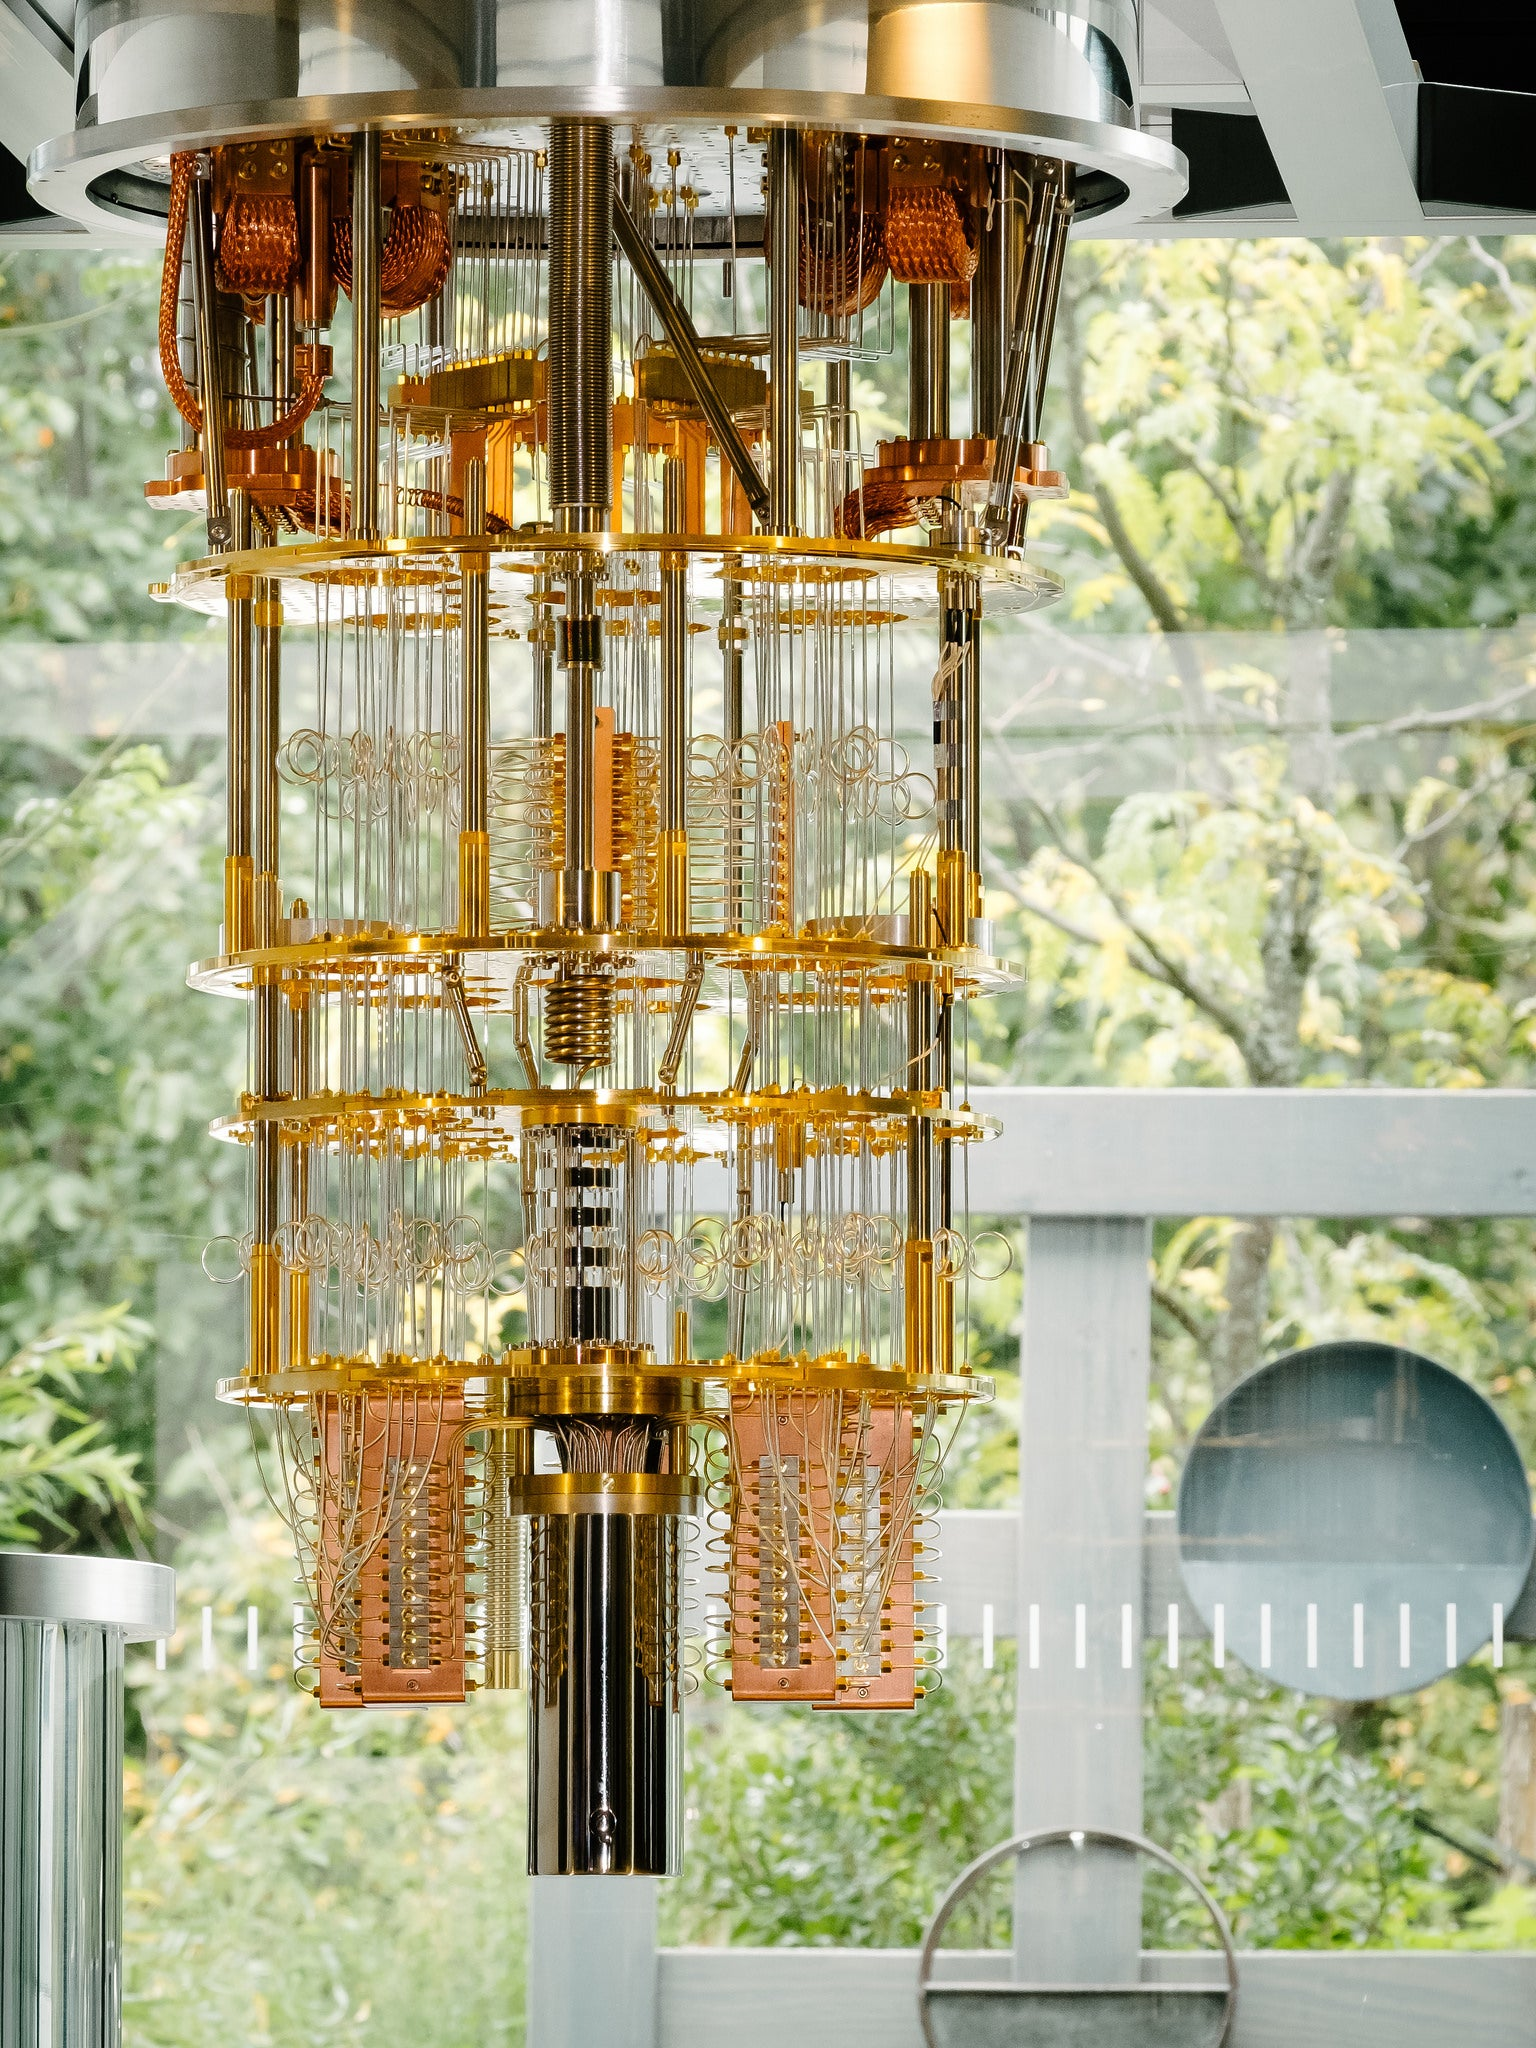 IBM's Newest Quantum Computers Are The Most Powerful Of